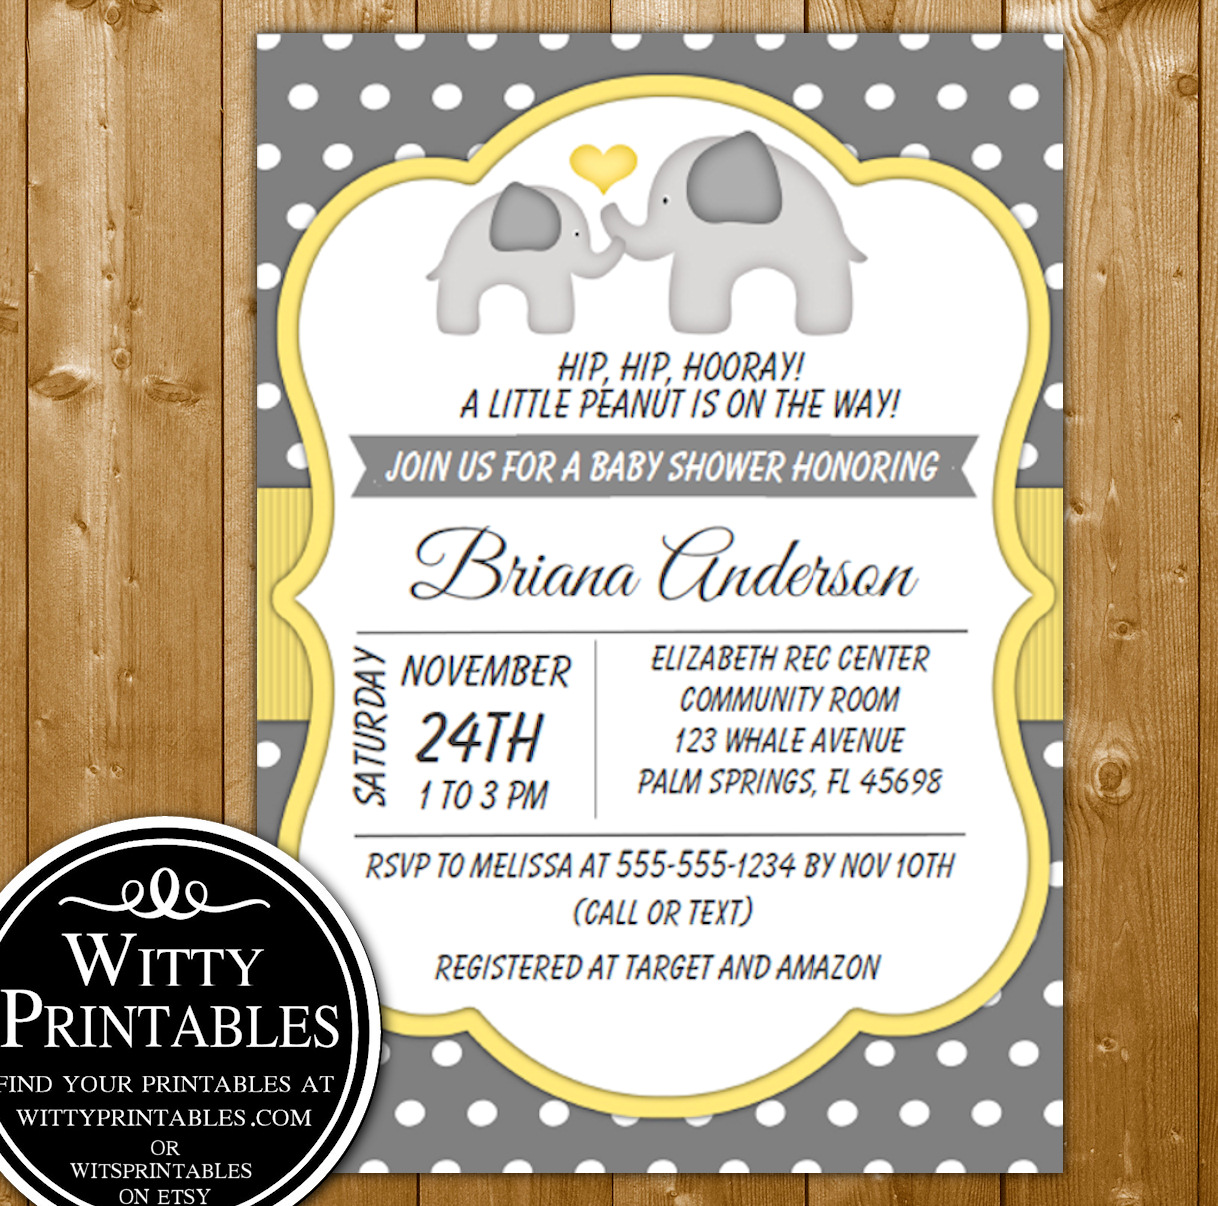 e4cd5f3b7 Baby Shower Invitation Yellow Elephants for a Neutral Baby Shower ...